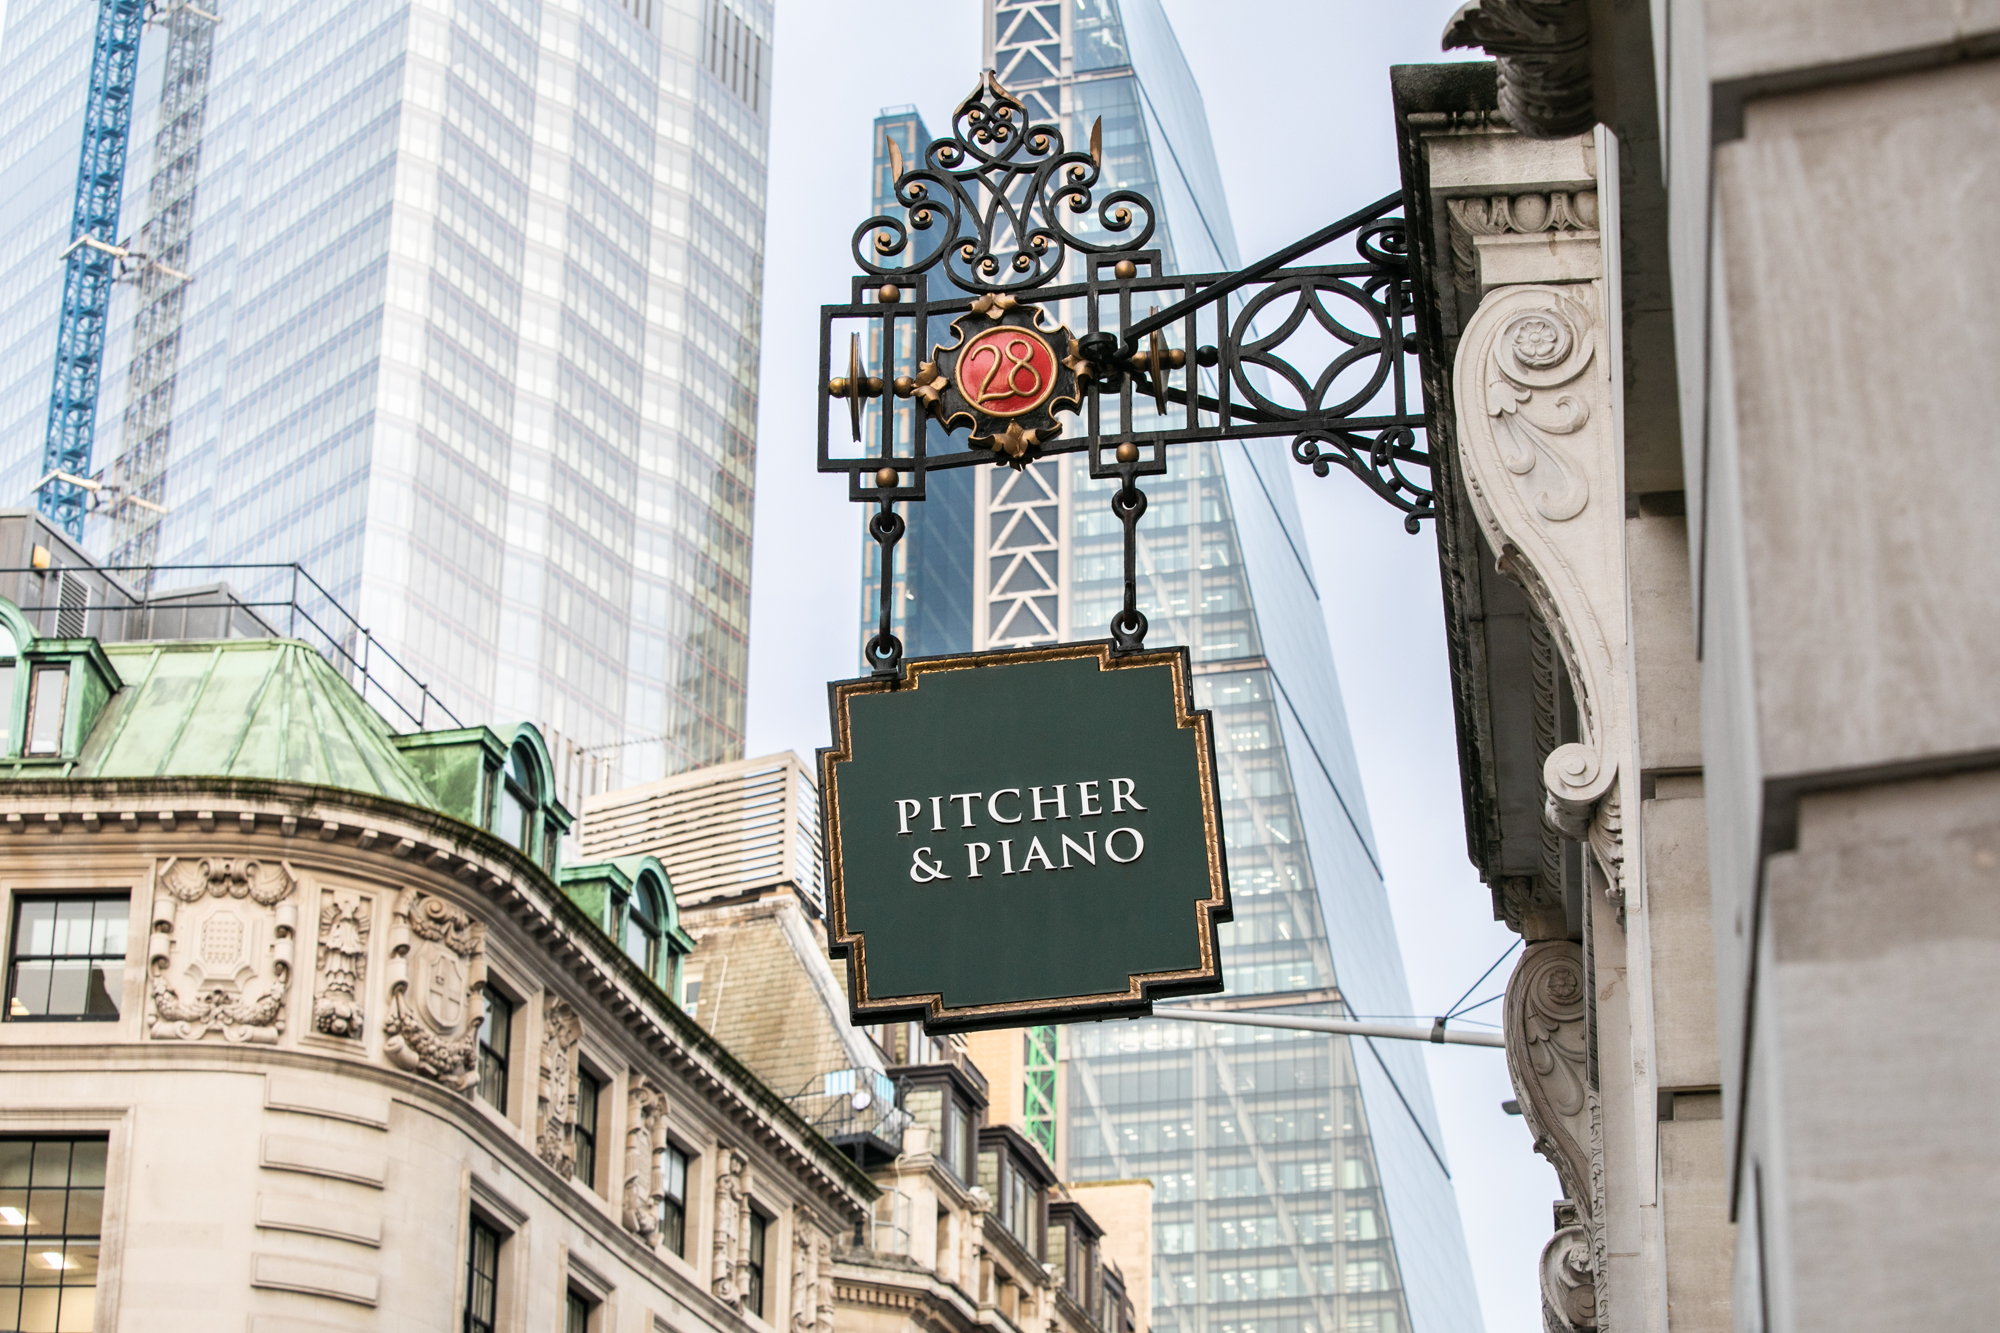 Speed Dating in London (Ages 30-45) @ The Pitcher & Piano